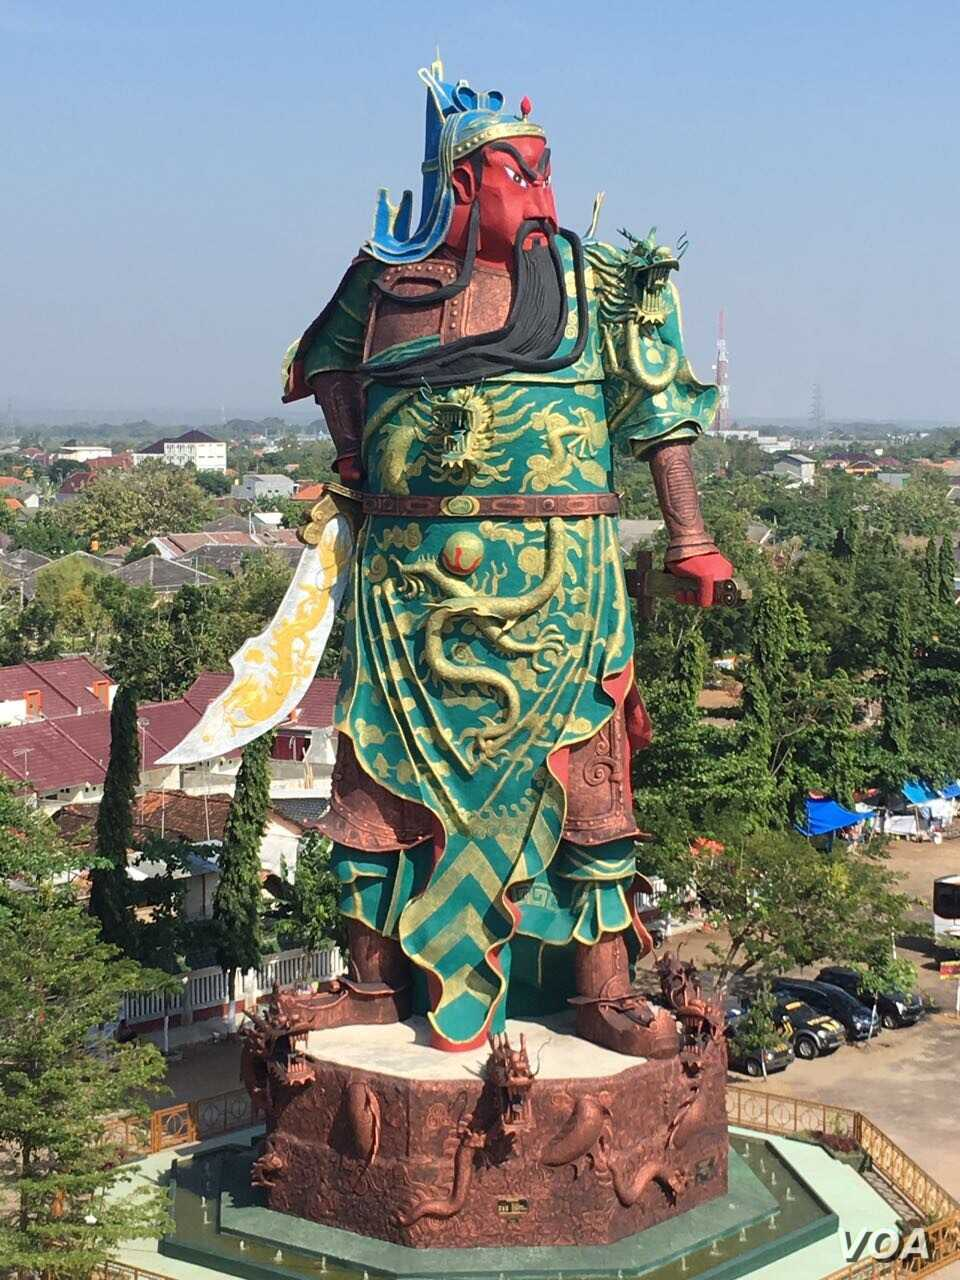 The 30-meter statue at the Kwan Seng Bio temple in Tuban, East Java drew outside protesters earlier this week who contended the image of the Chinese warrior god --- who protects against war --- does not represent Indonesian culture.